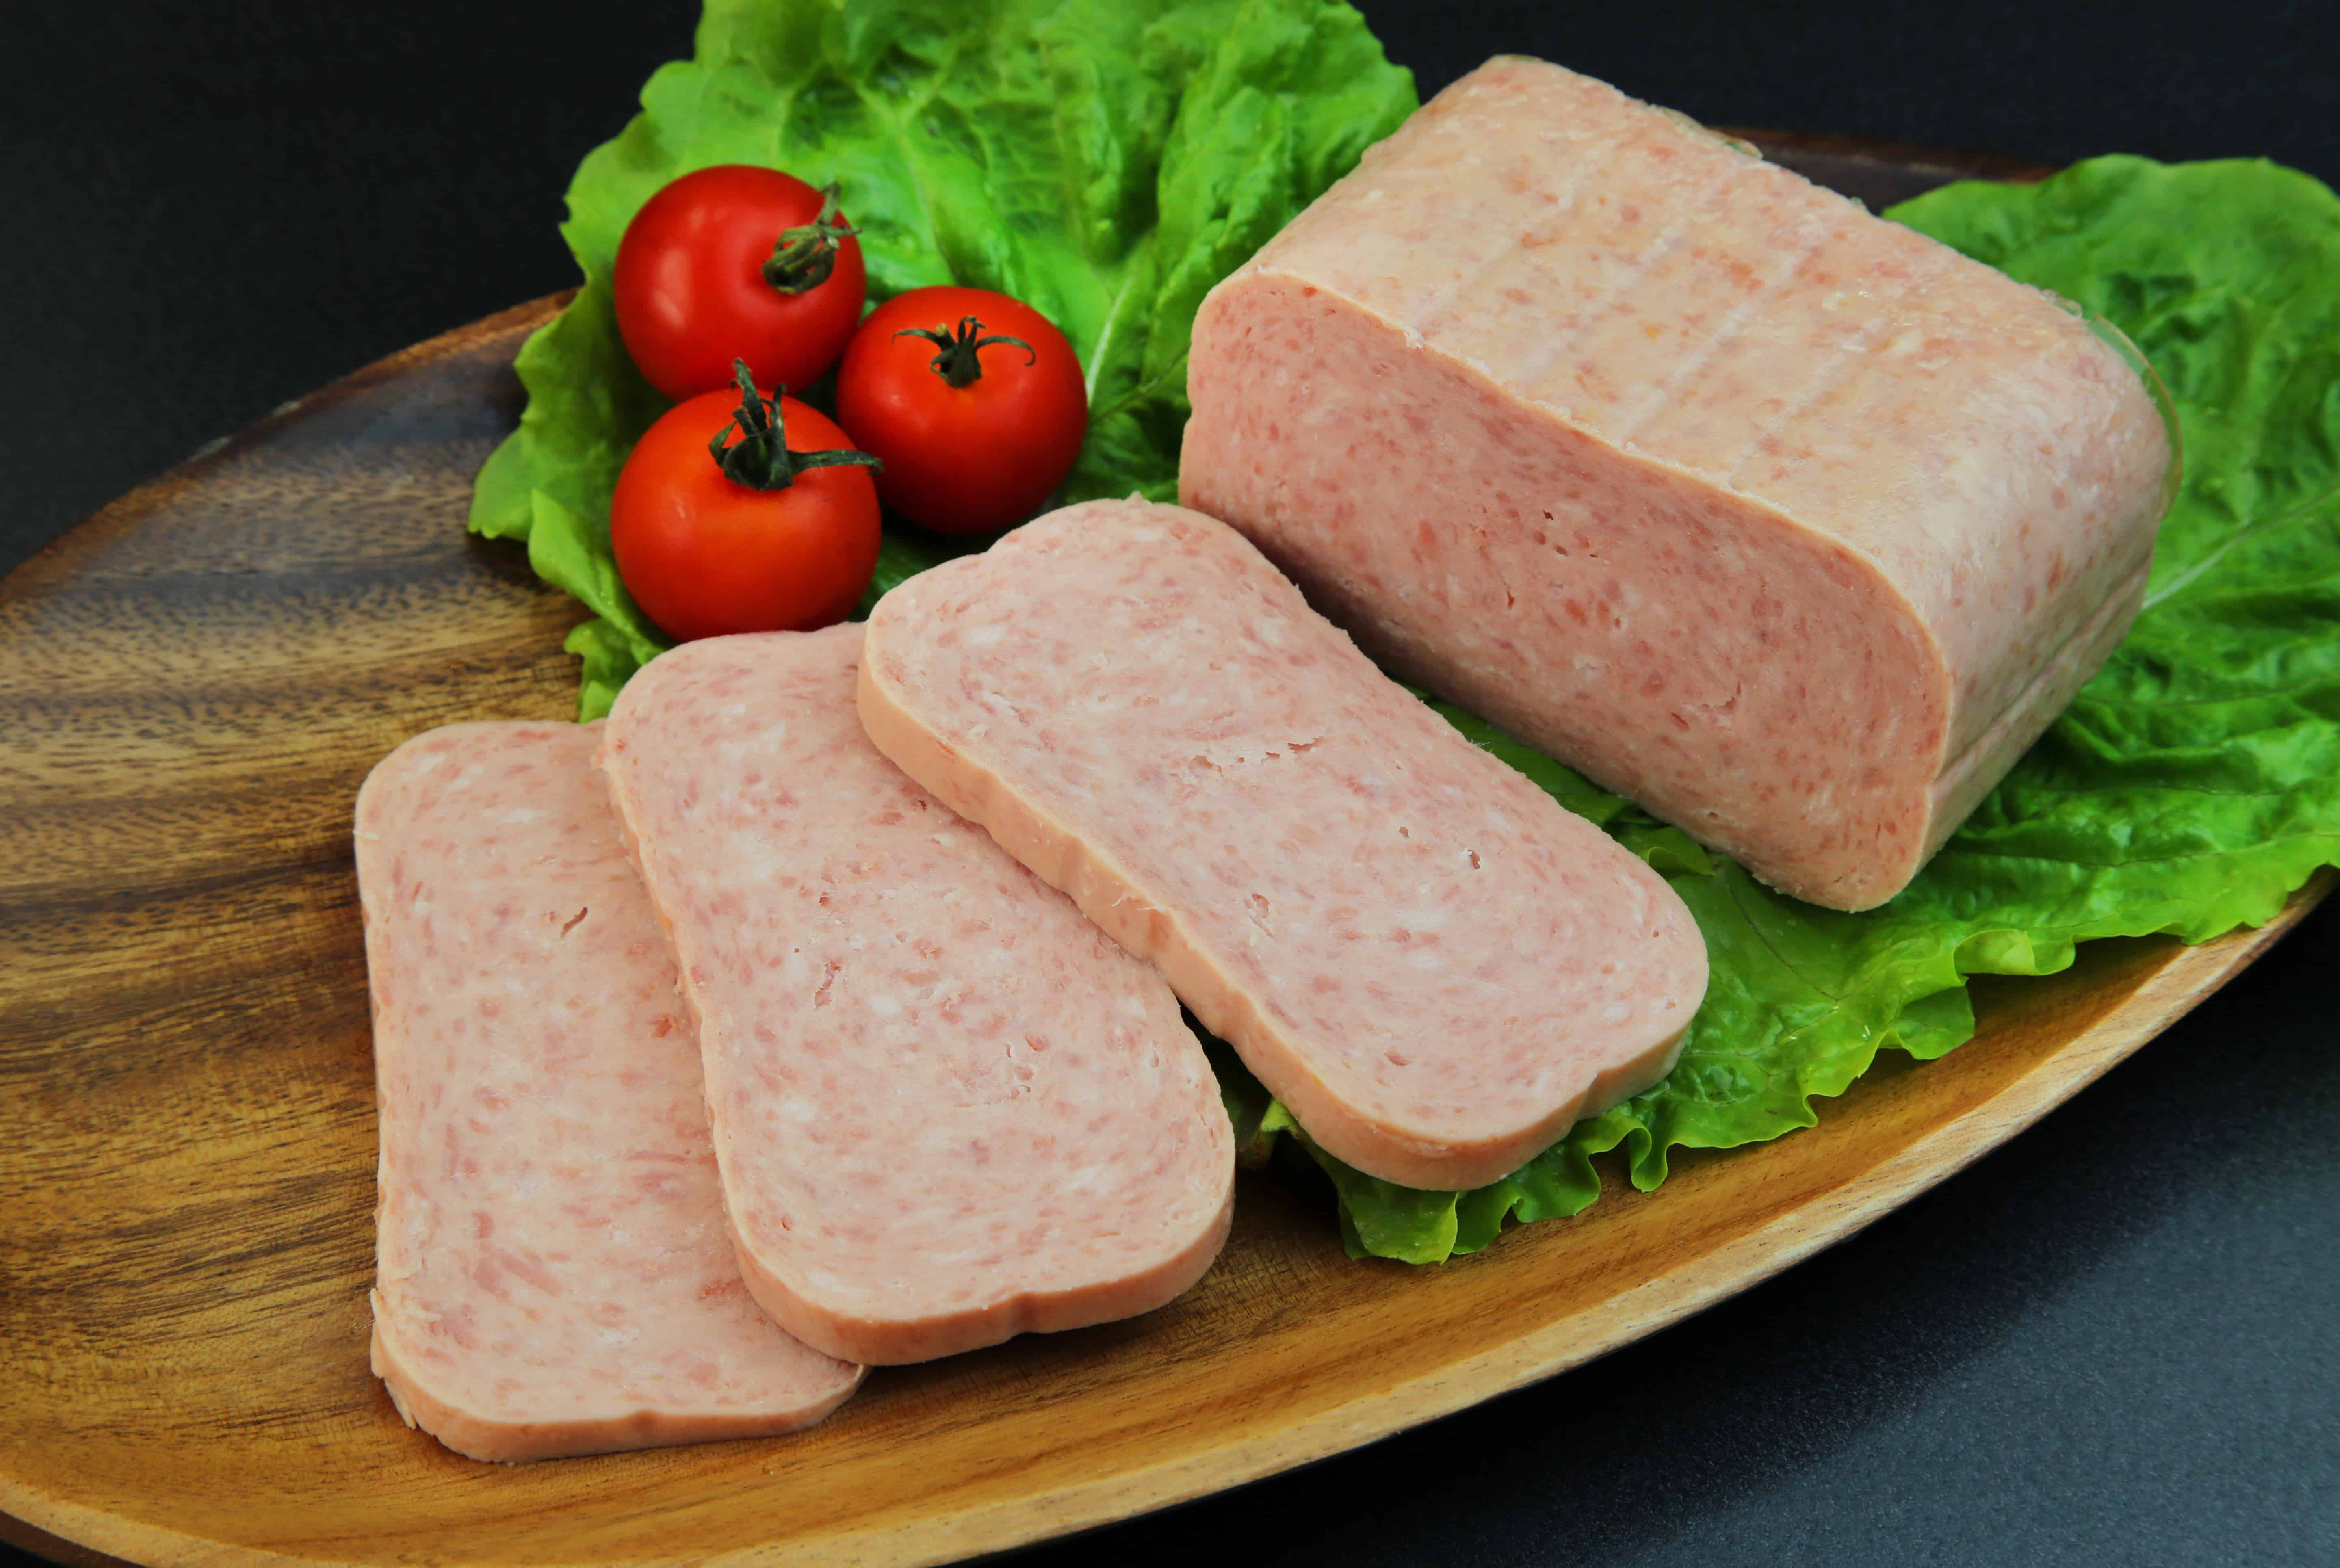 Spam canned meat displayed with flourishes